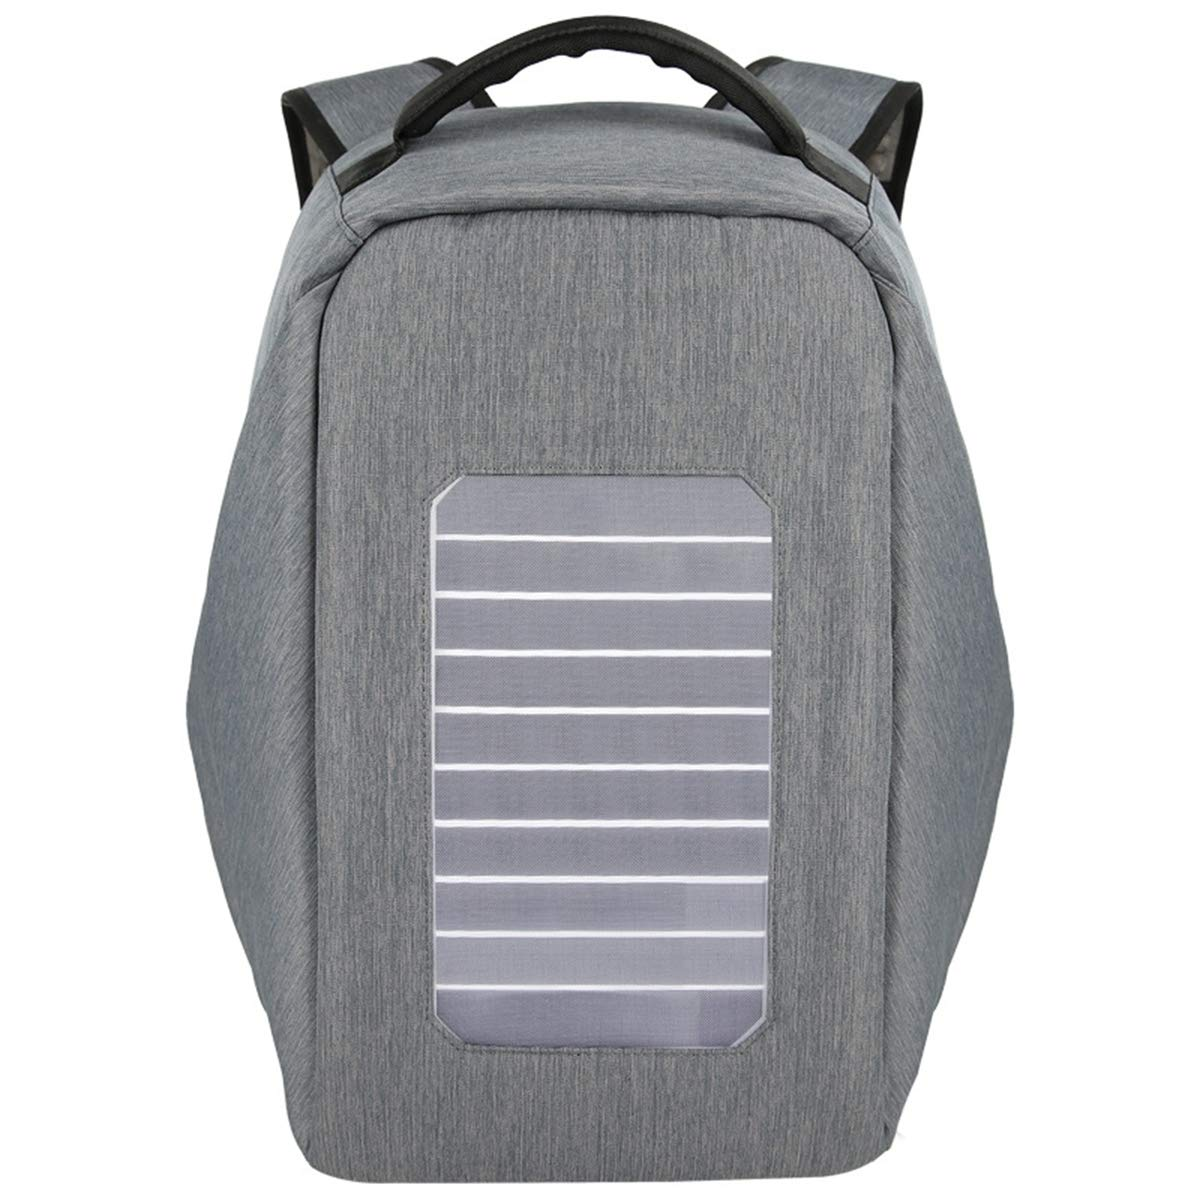 a2914270a12c Amazon.com: EFGS Solar Backpack, Portable Solar Charger, with ...